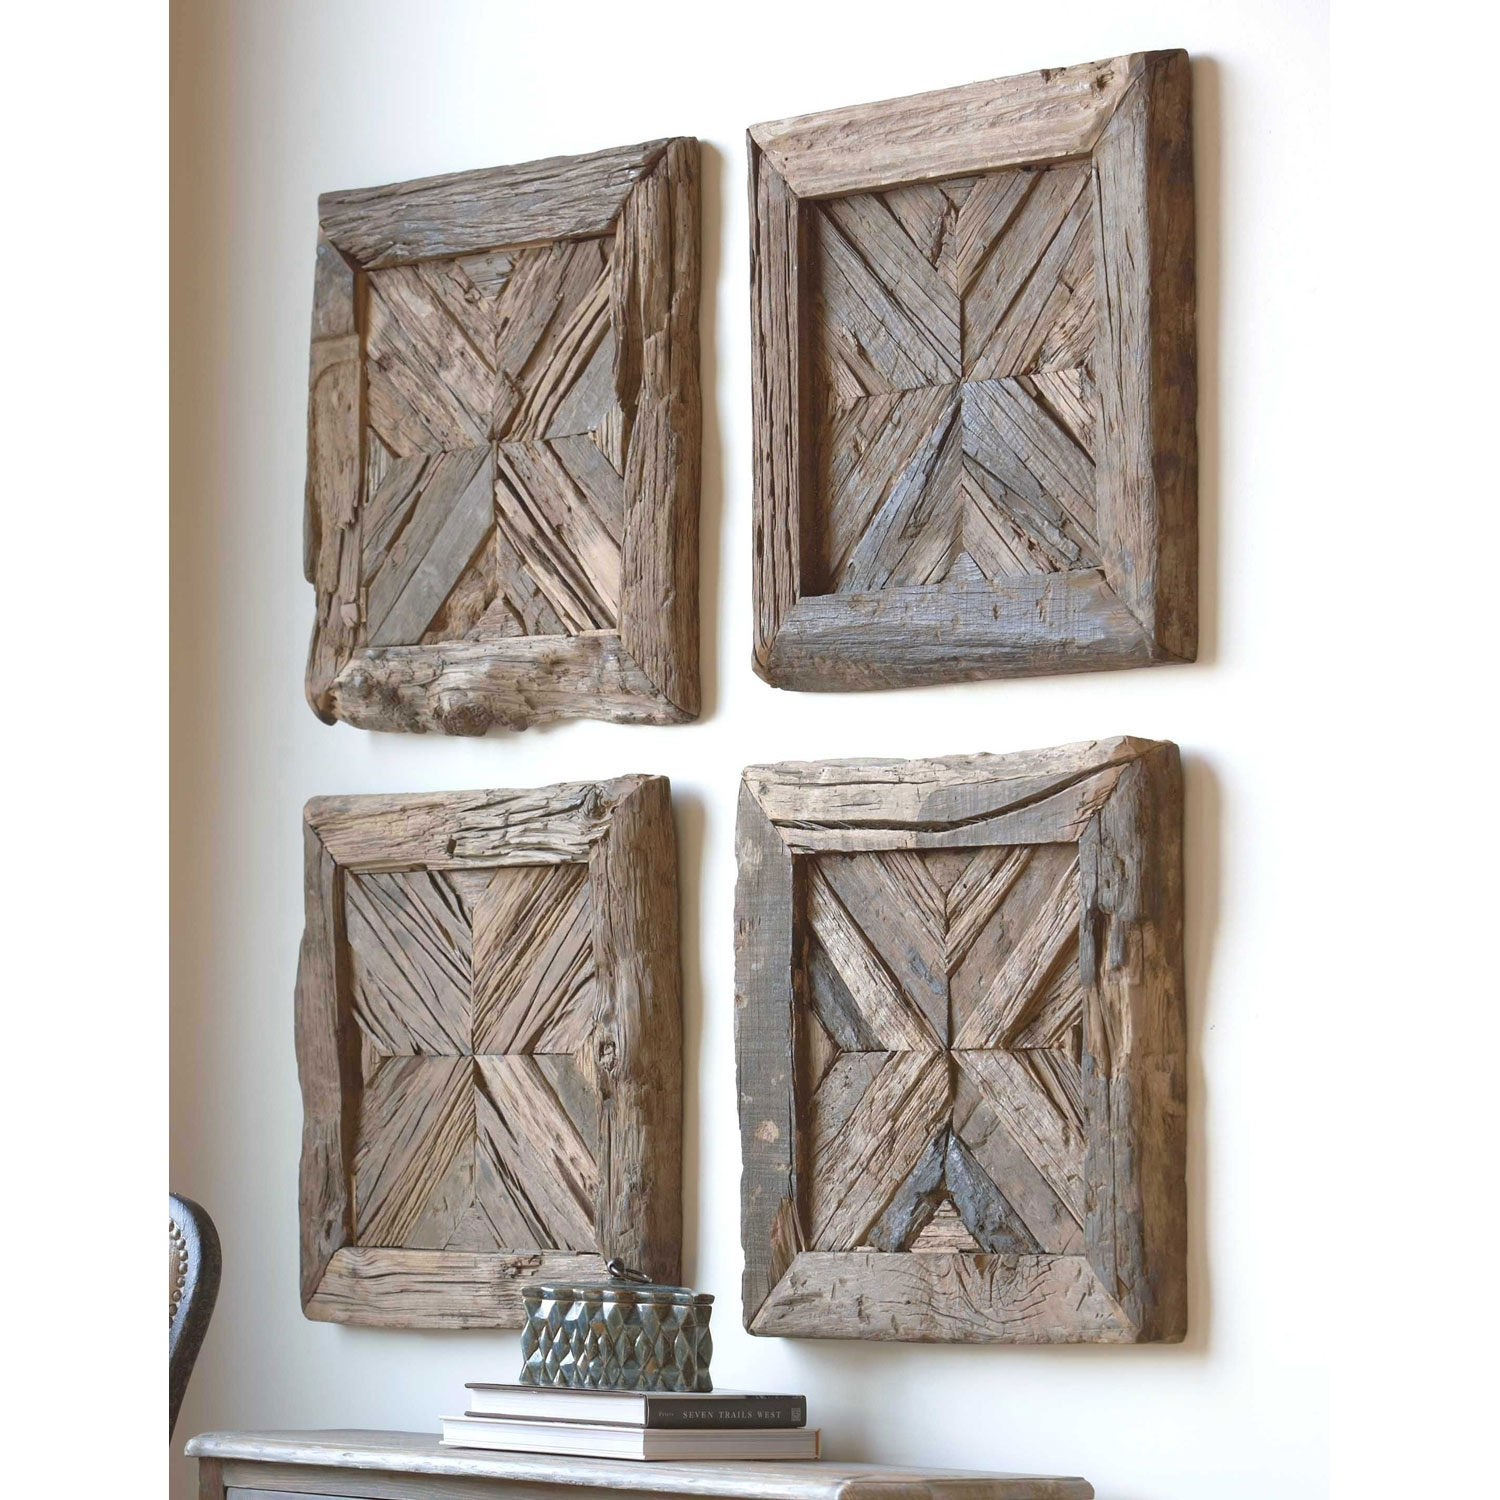 Uttermost Rennick Rustic Wood Wall Art 04014 | Bellacor With Most Current Uttermost Wall Art (View 14 of 20)